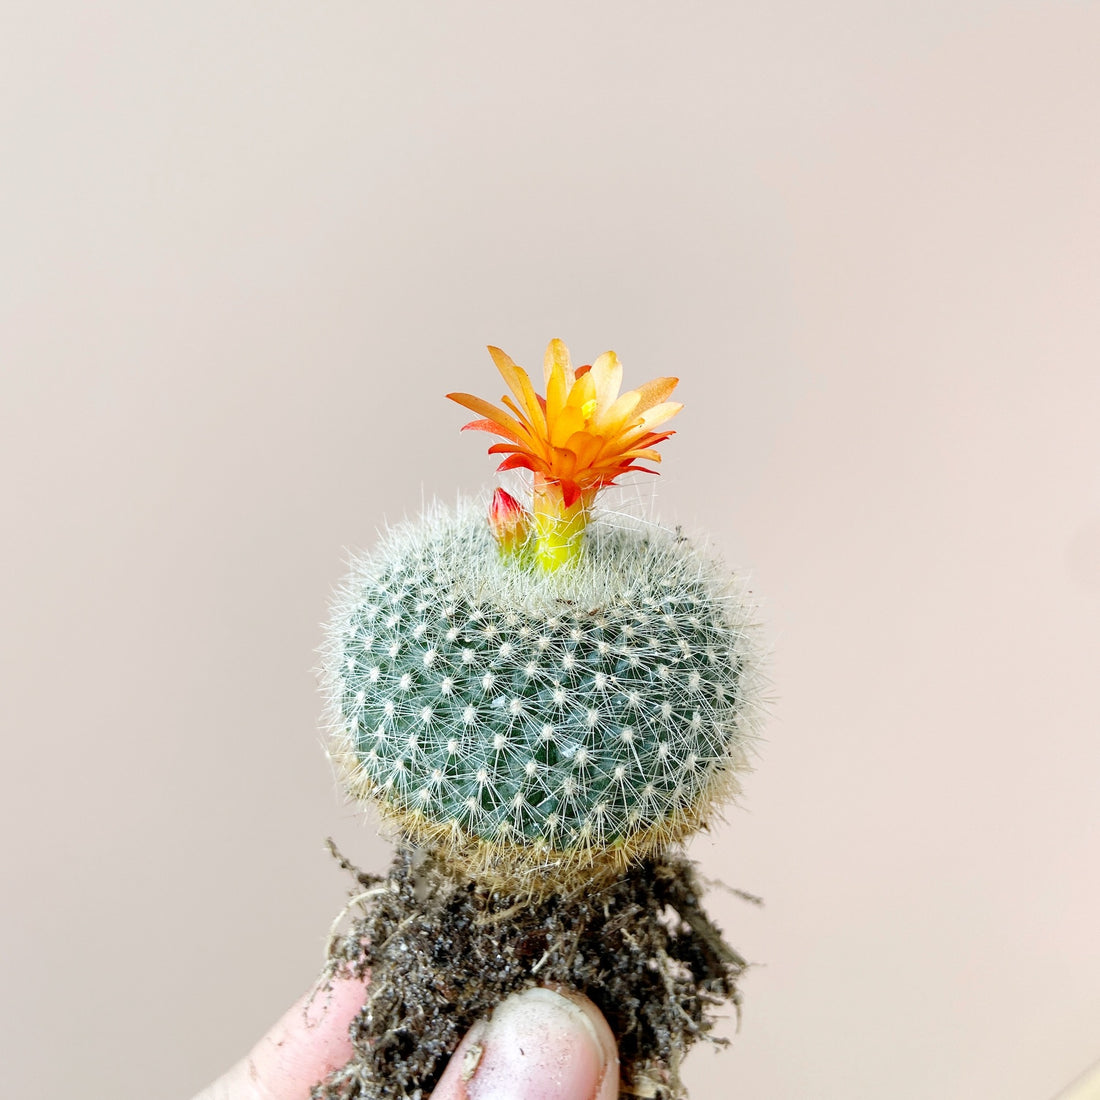 Tips to Make your Cactus, Succulents and Plants Bloom